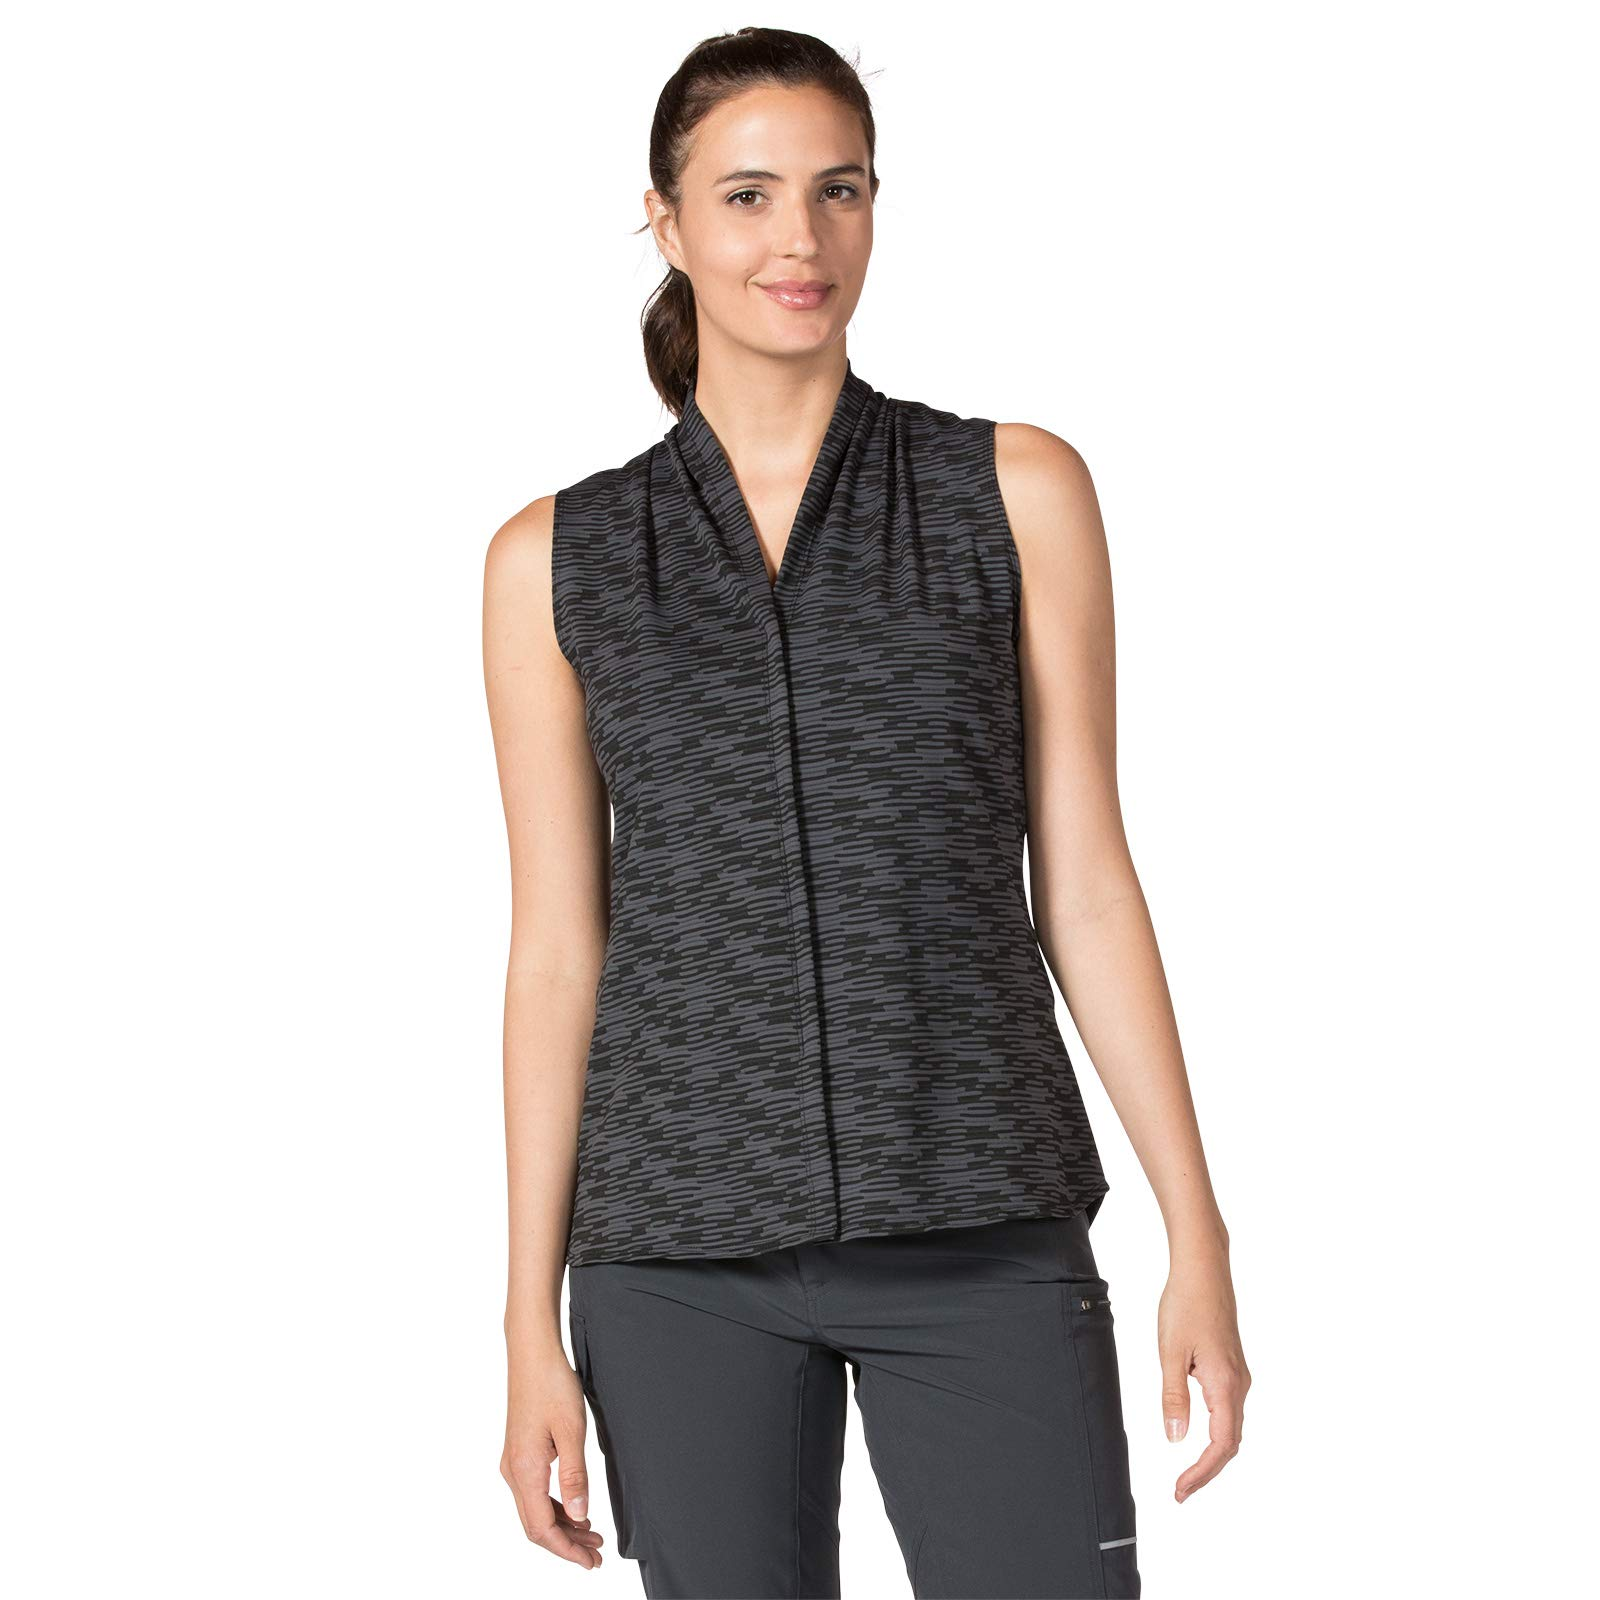 Terry Women's Transit Top, The Prefect Everyday Sleeveless Athletic Blouse (XX Large, Interwoven) by Terry